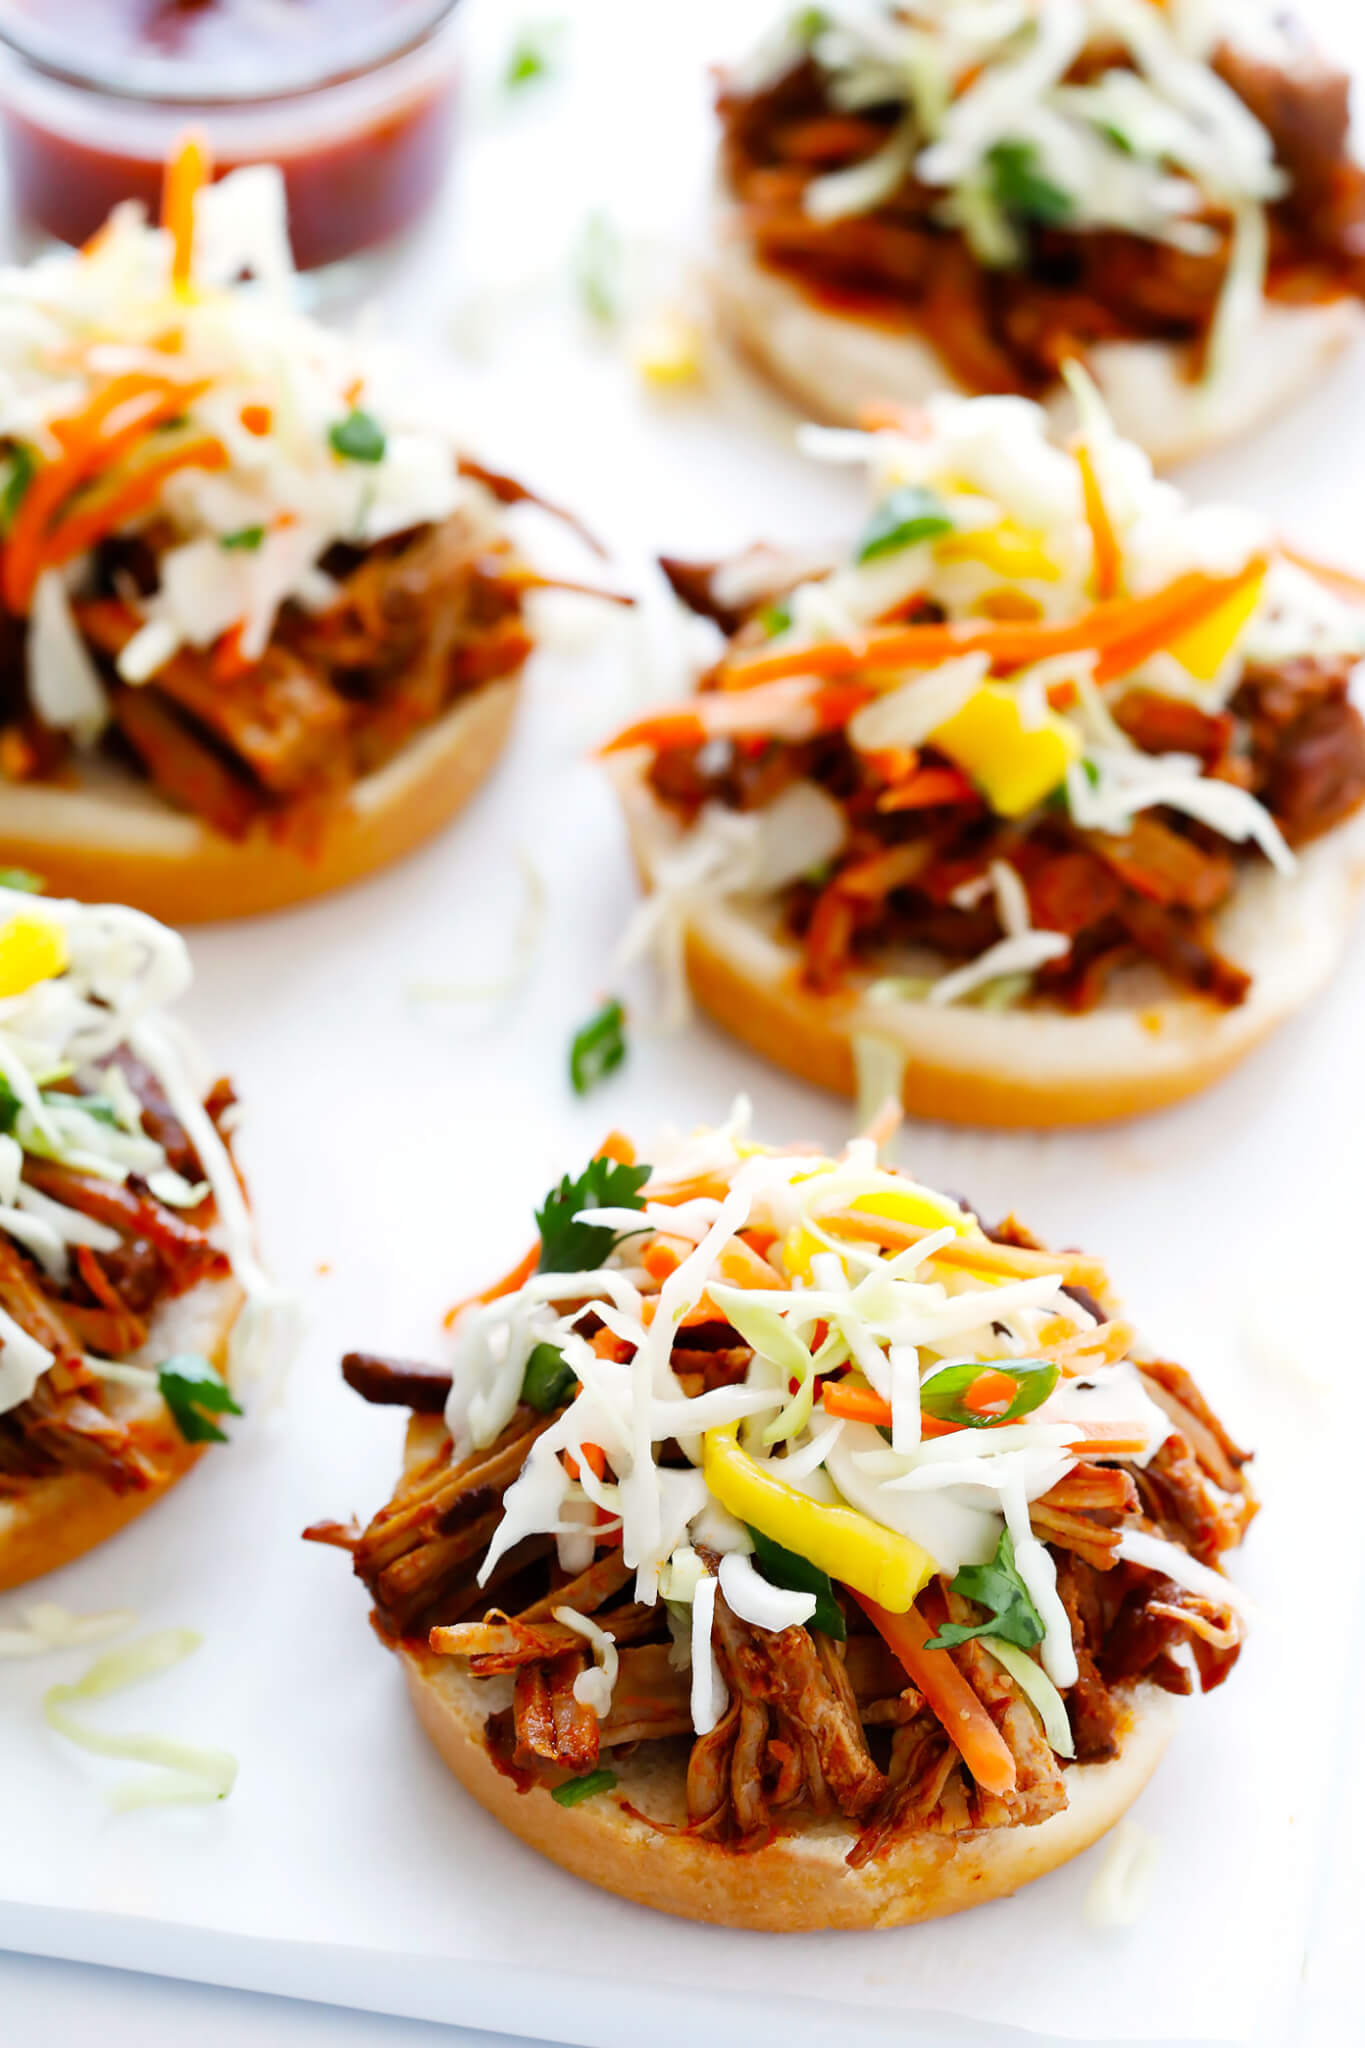 This Instant Pot Pulled Pork recipe is easy to make with your favorite BBQ sauce, and SO tender and delicious! Perfect for picnics, potlucks, or any time you're craving some delicious BBQ for dinner.   gimmesomeoven.com